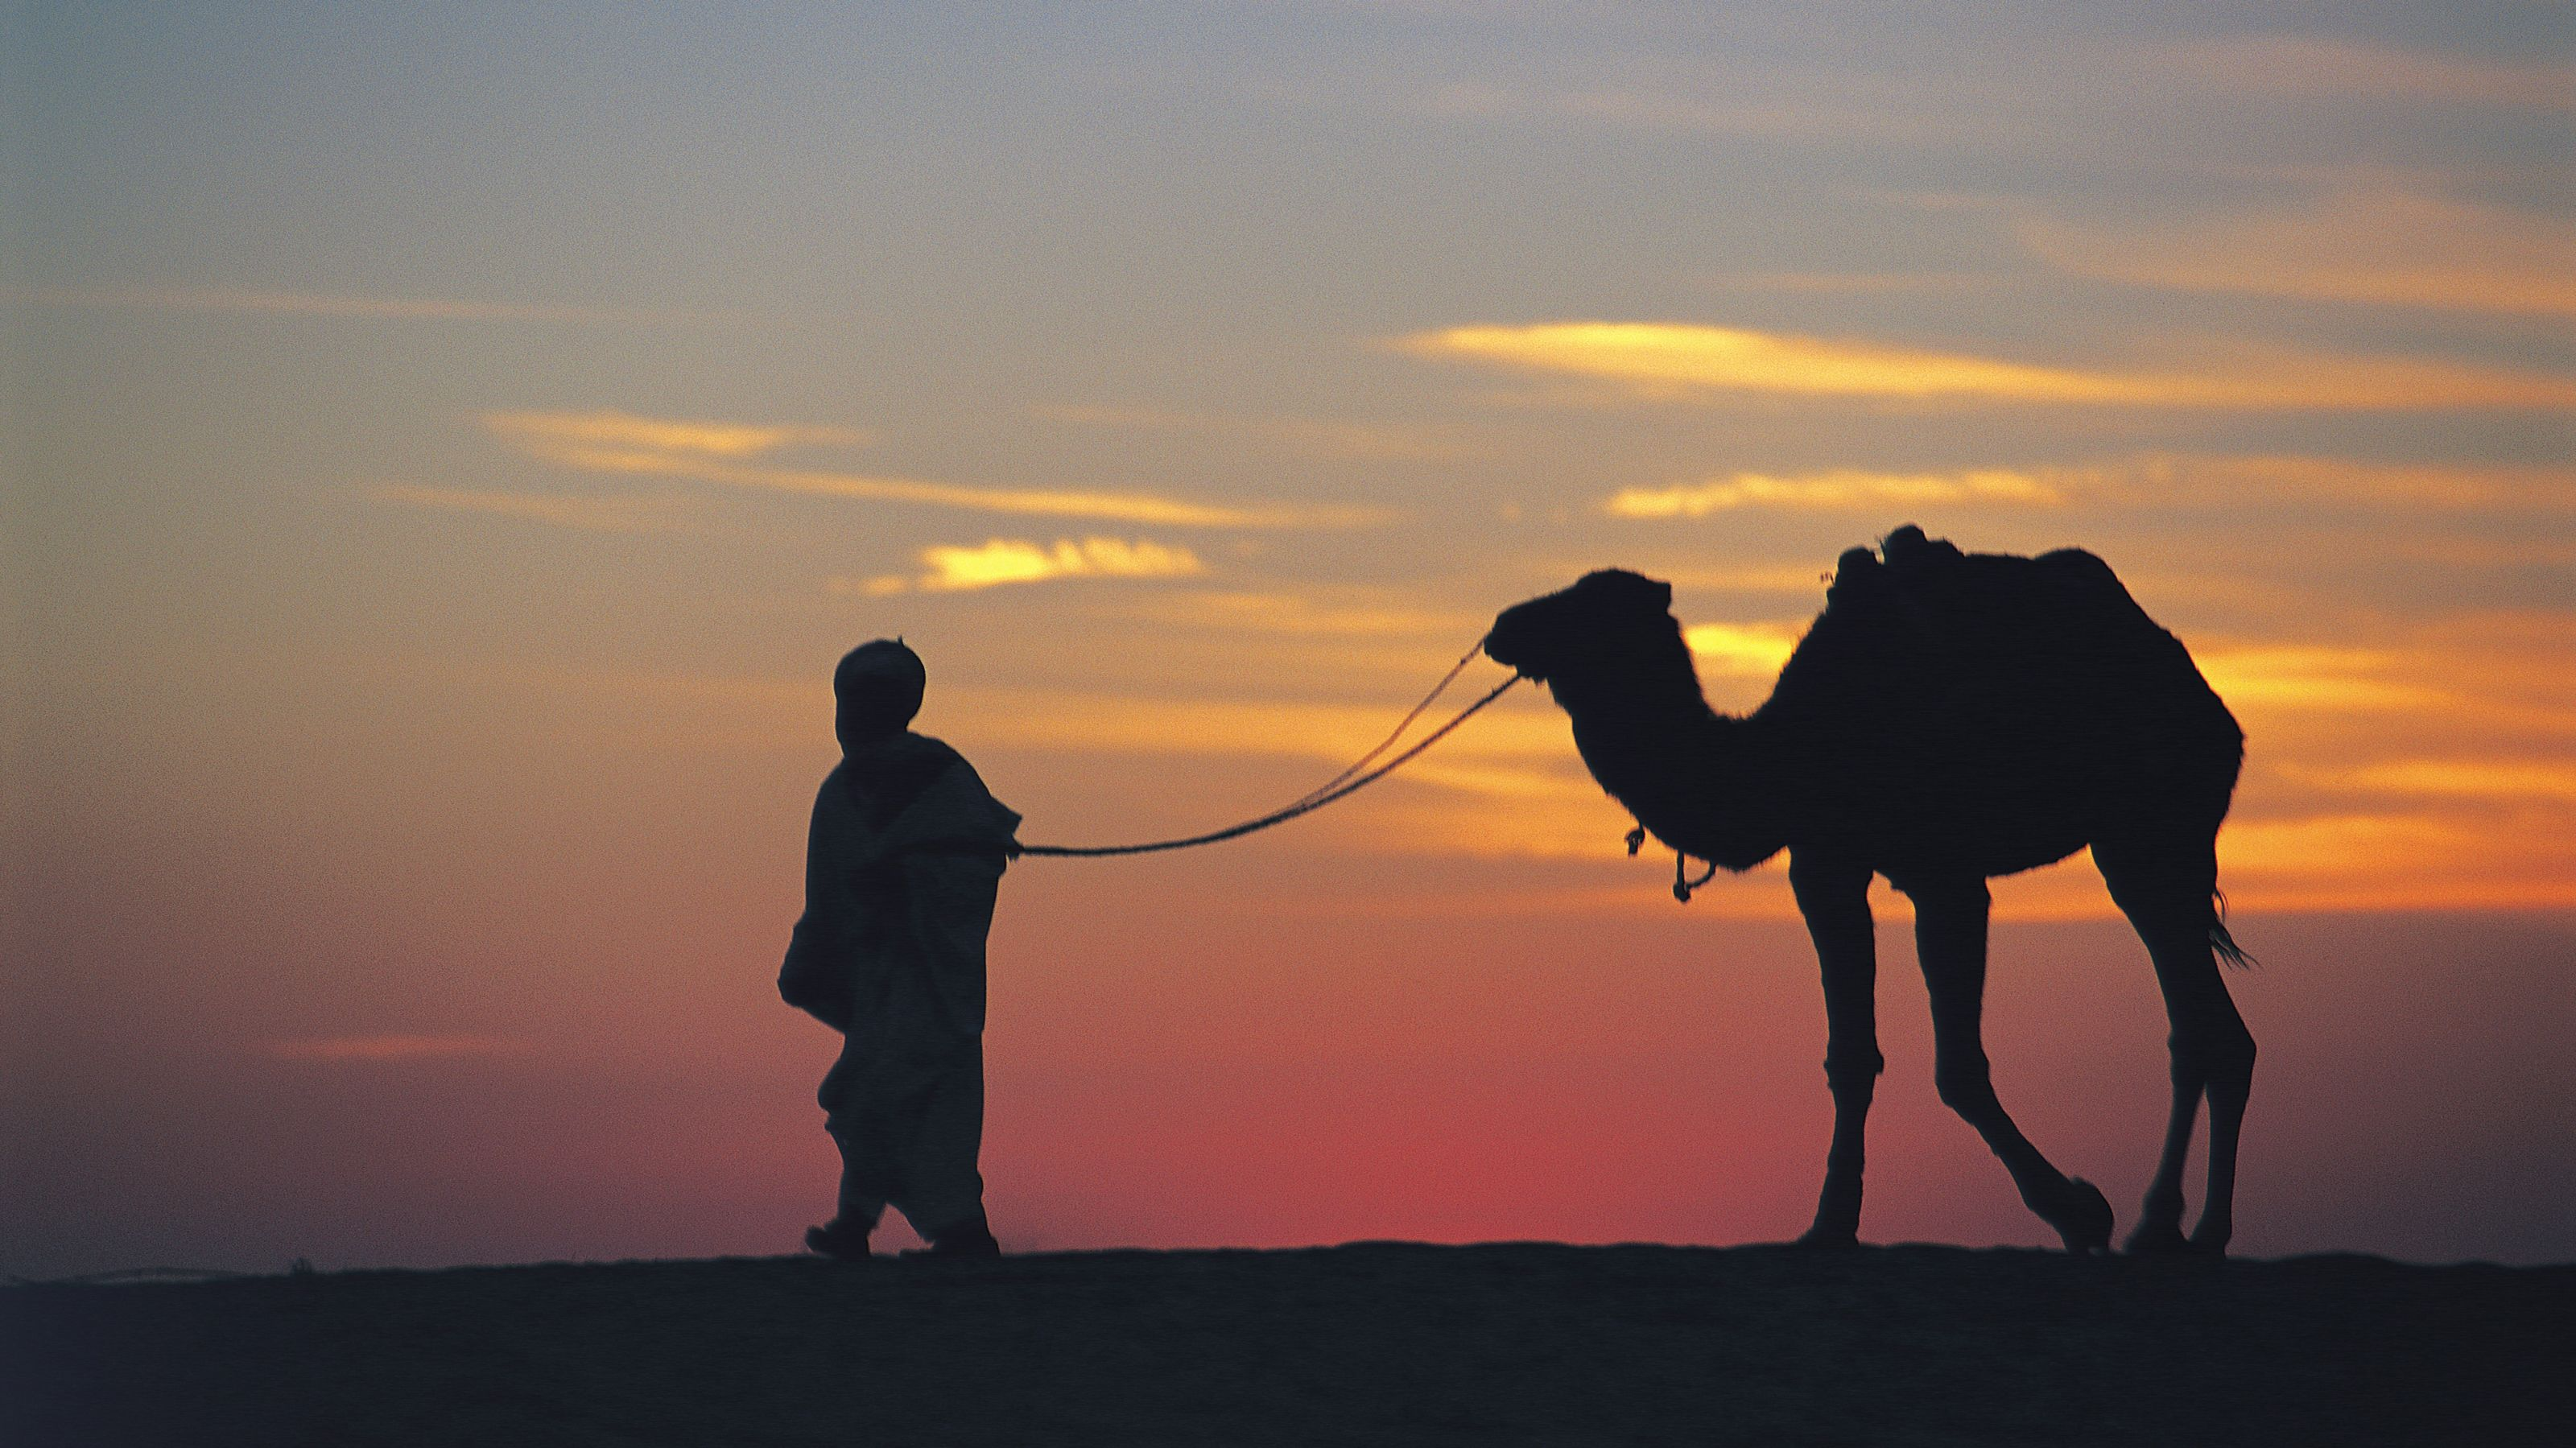 Silhouette of man leading a camel by the reins in Agadir